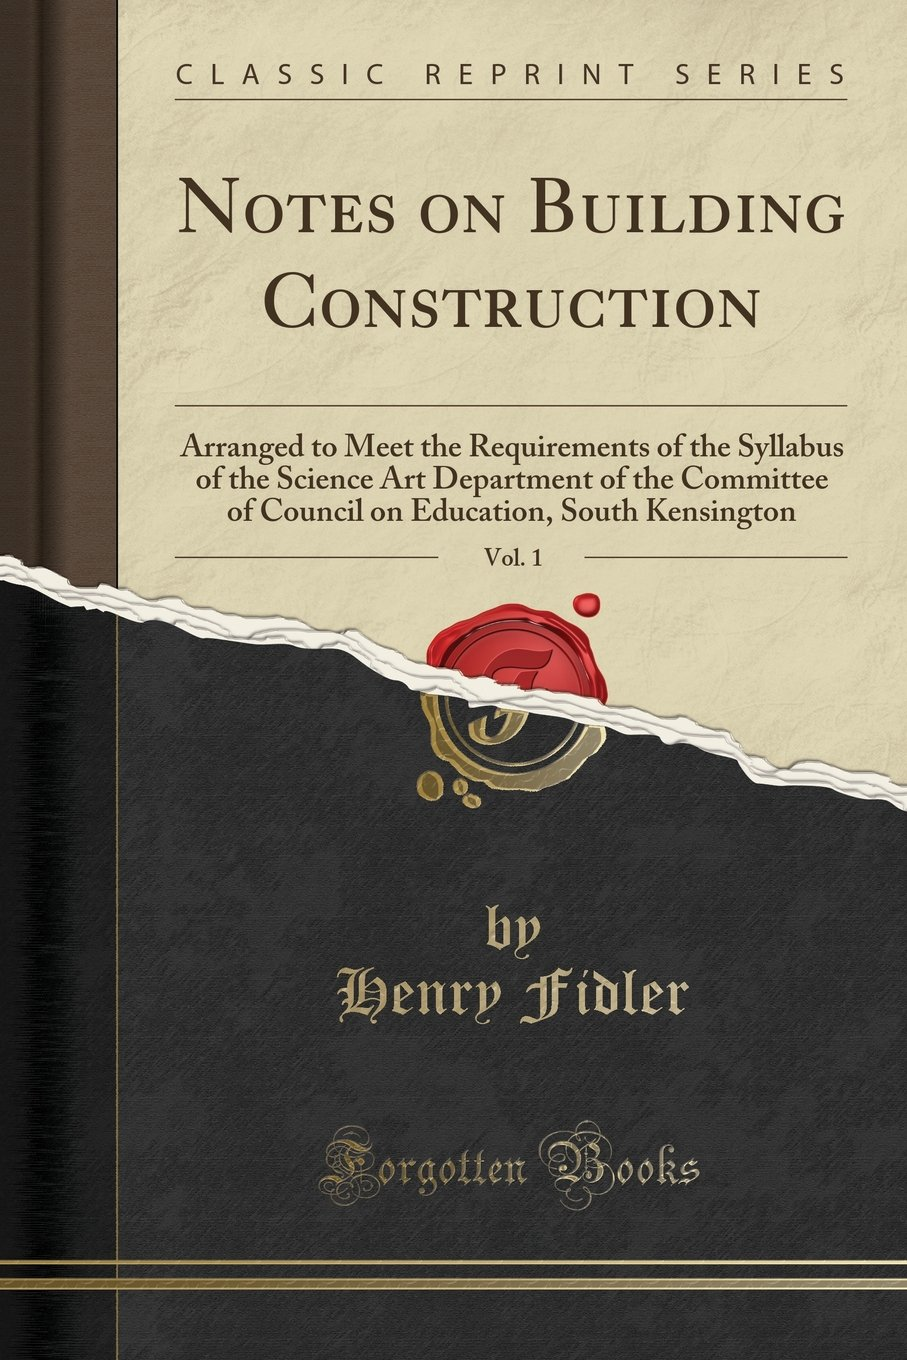 Notes on Building Construction, Vol. 1: Arranged to Meet the Requirements of the Syllabus of the Science Art Department of the Committee of Council on Education, South Kensington (Classic Reprint)